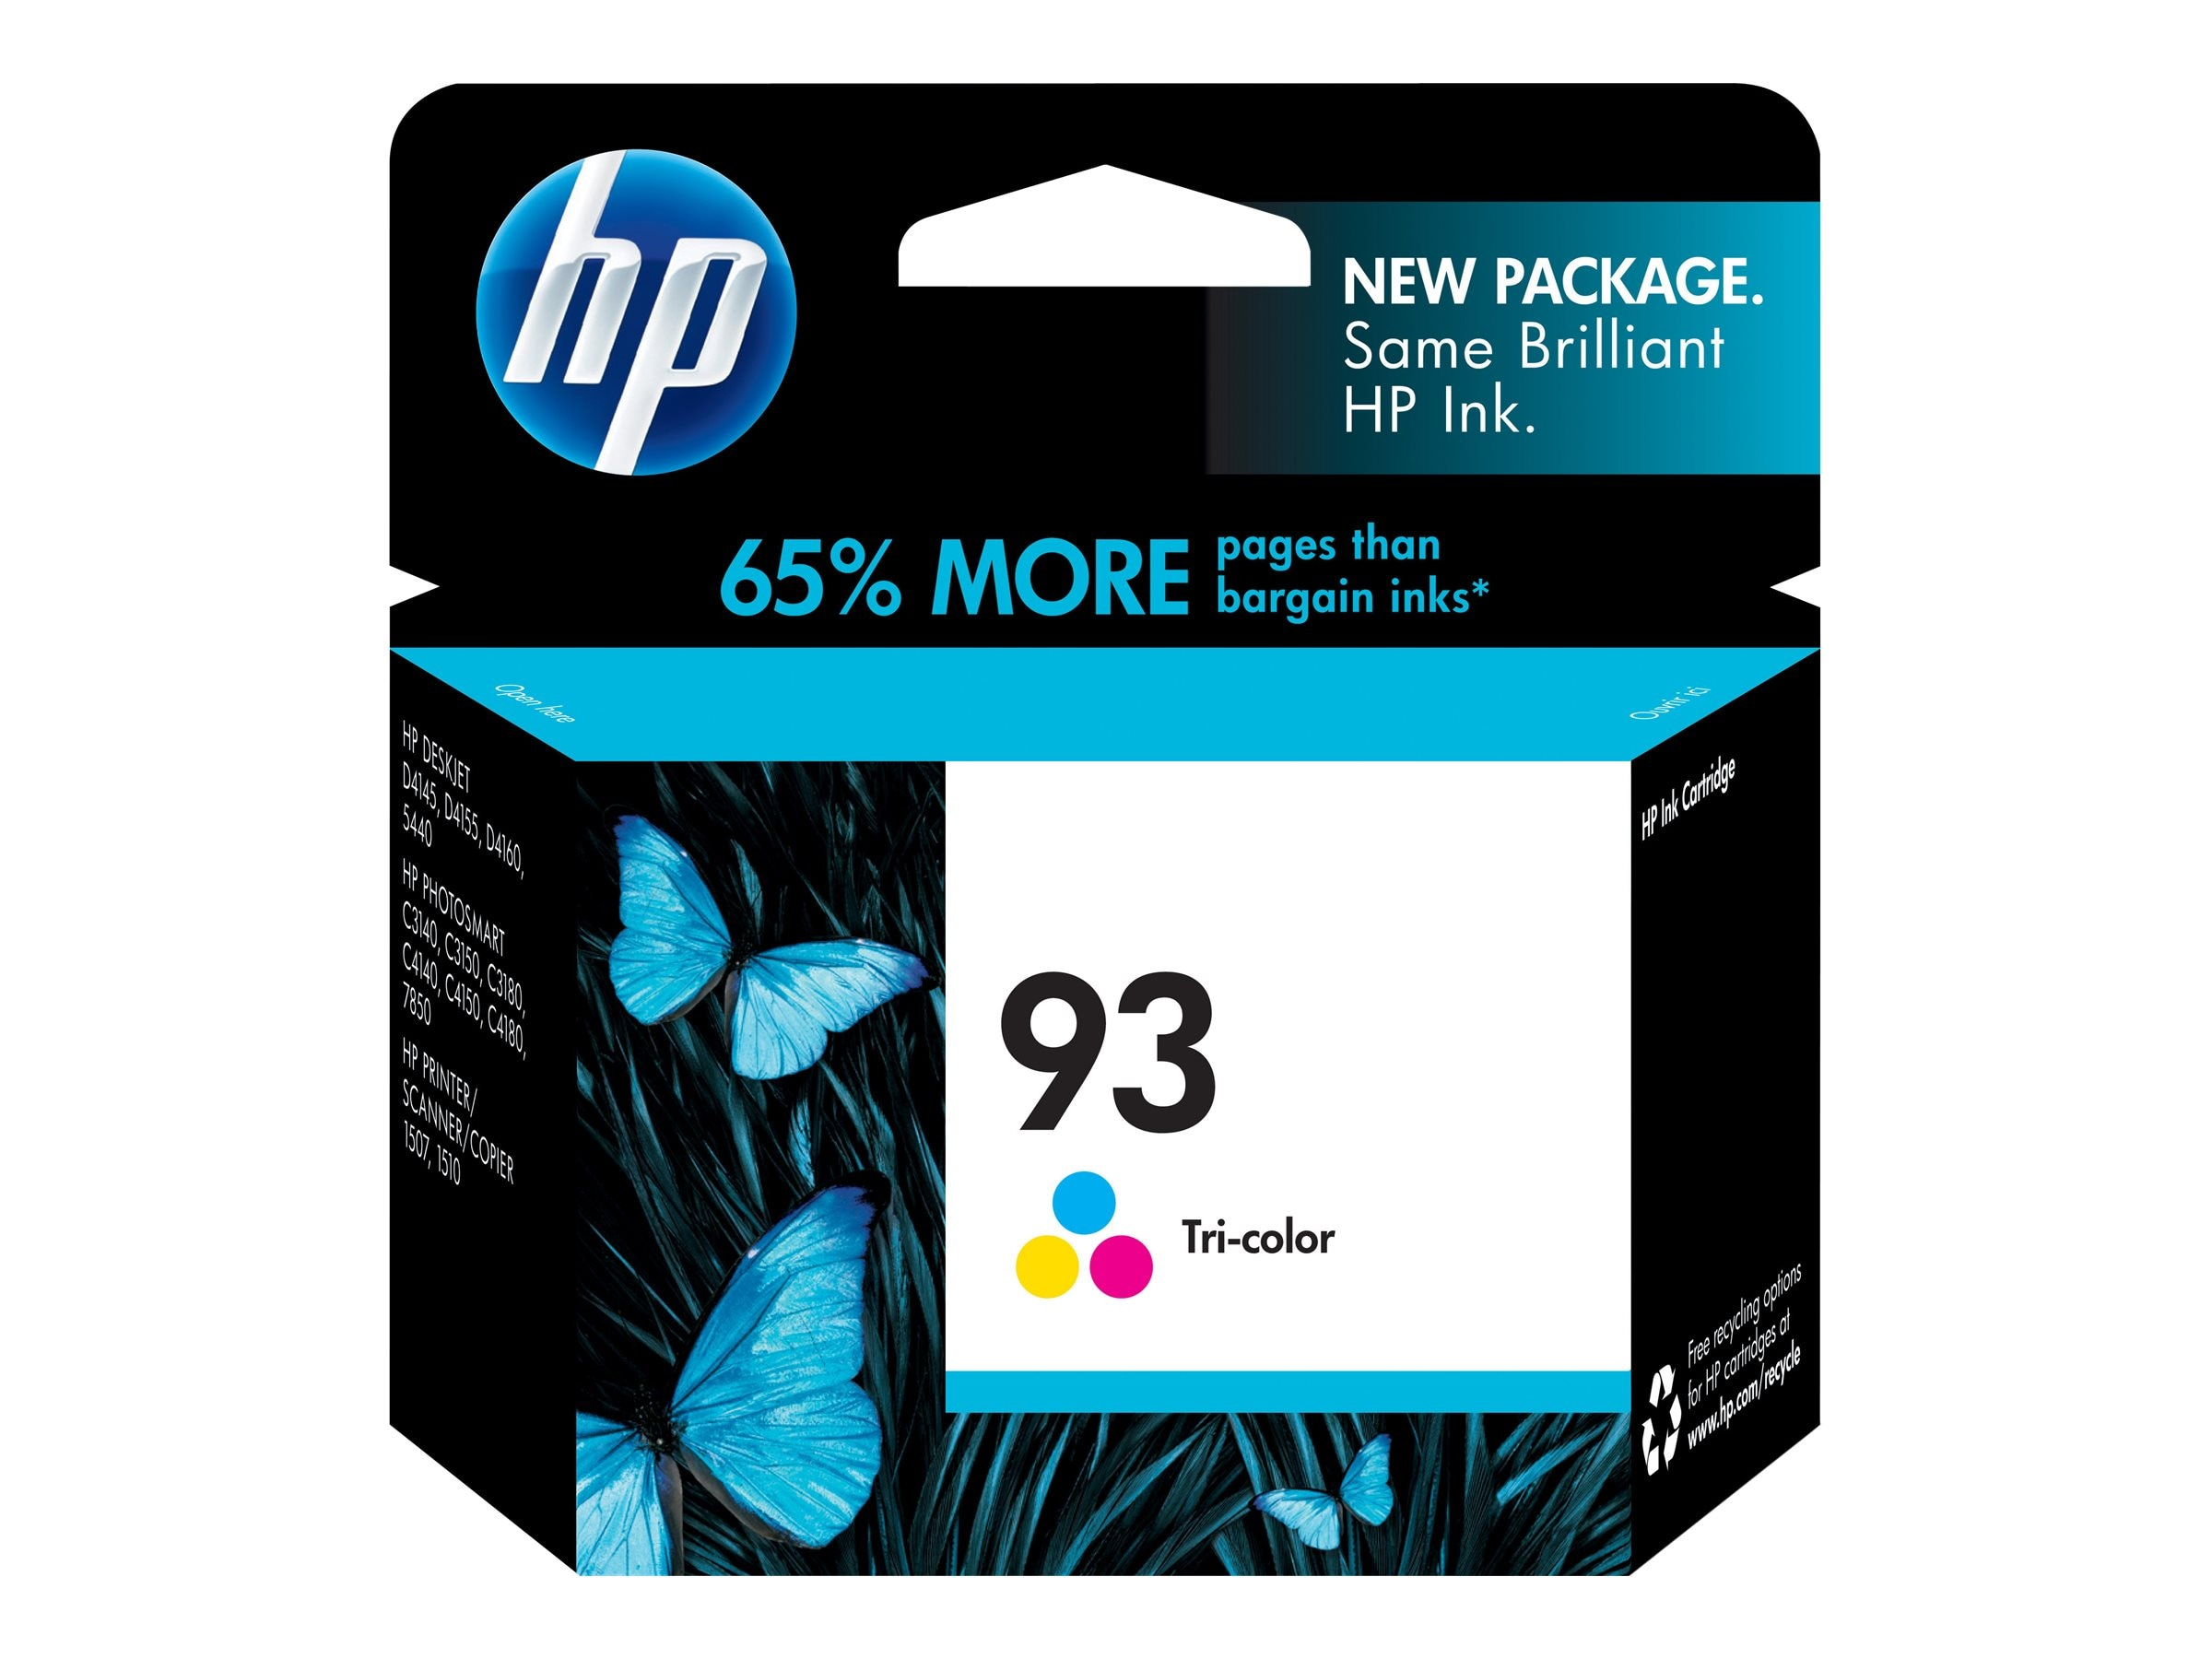 HP Inc. C9361WN#140 Image 1